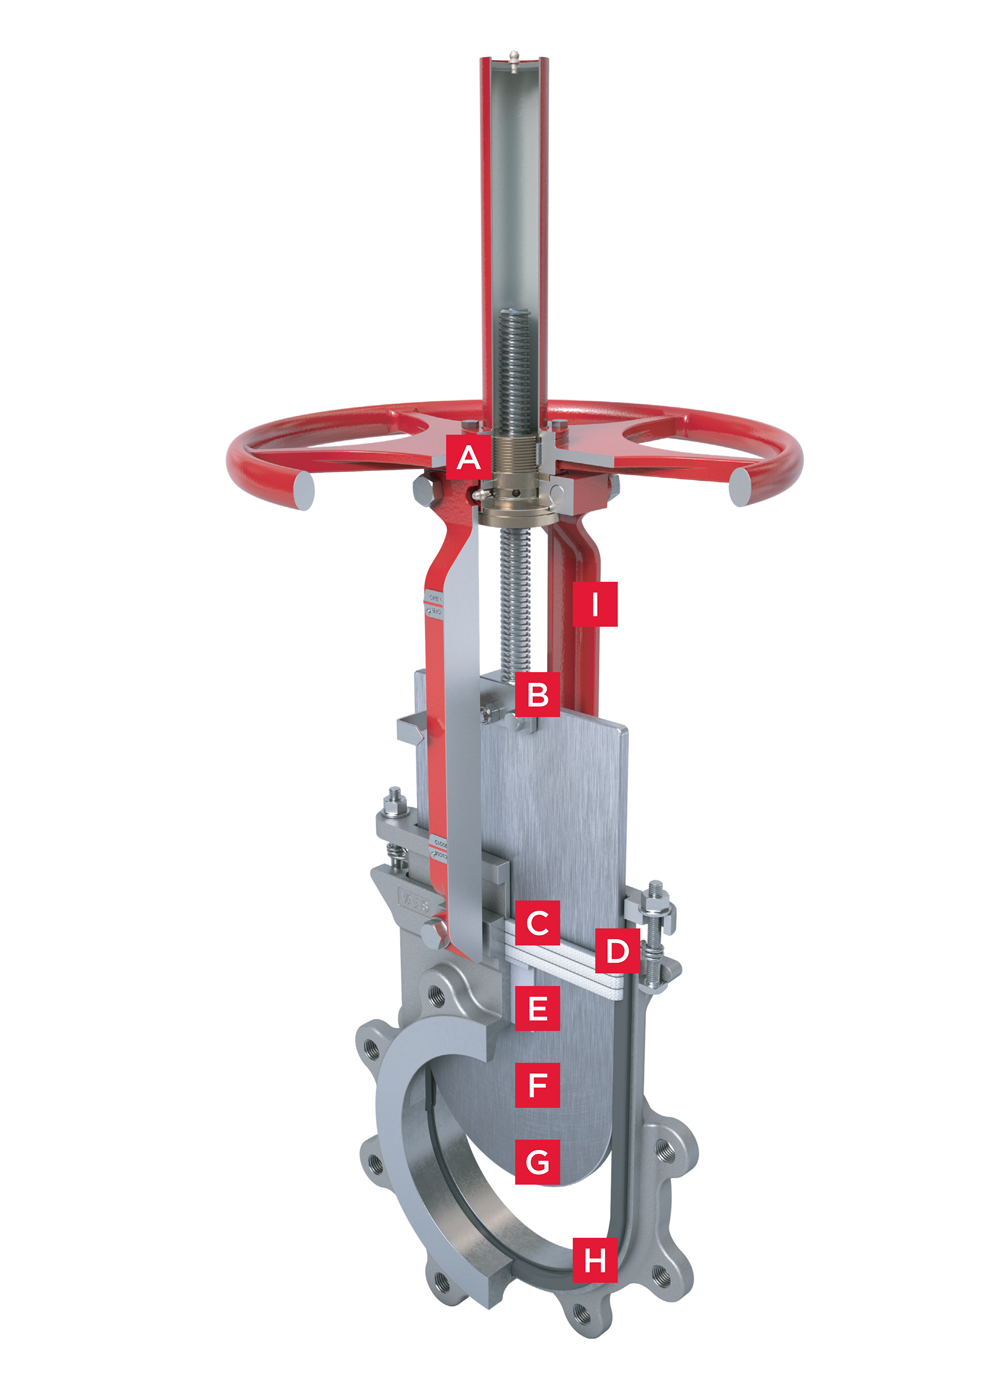 Bidirectional Knife Gate Valve Series 740 Features